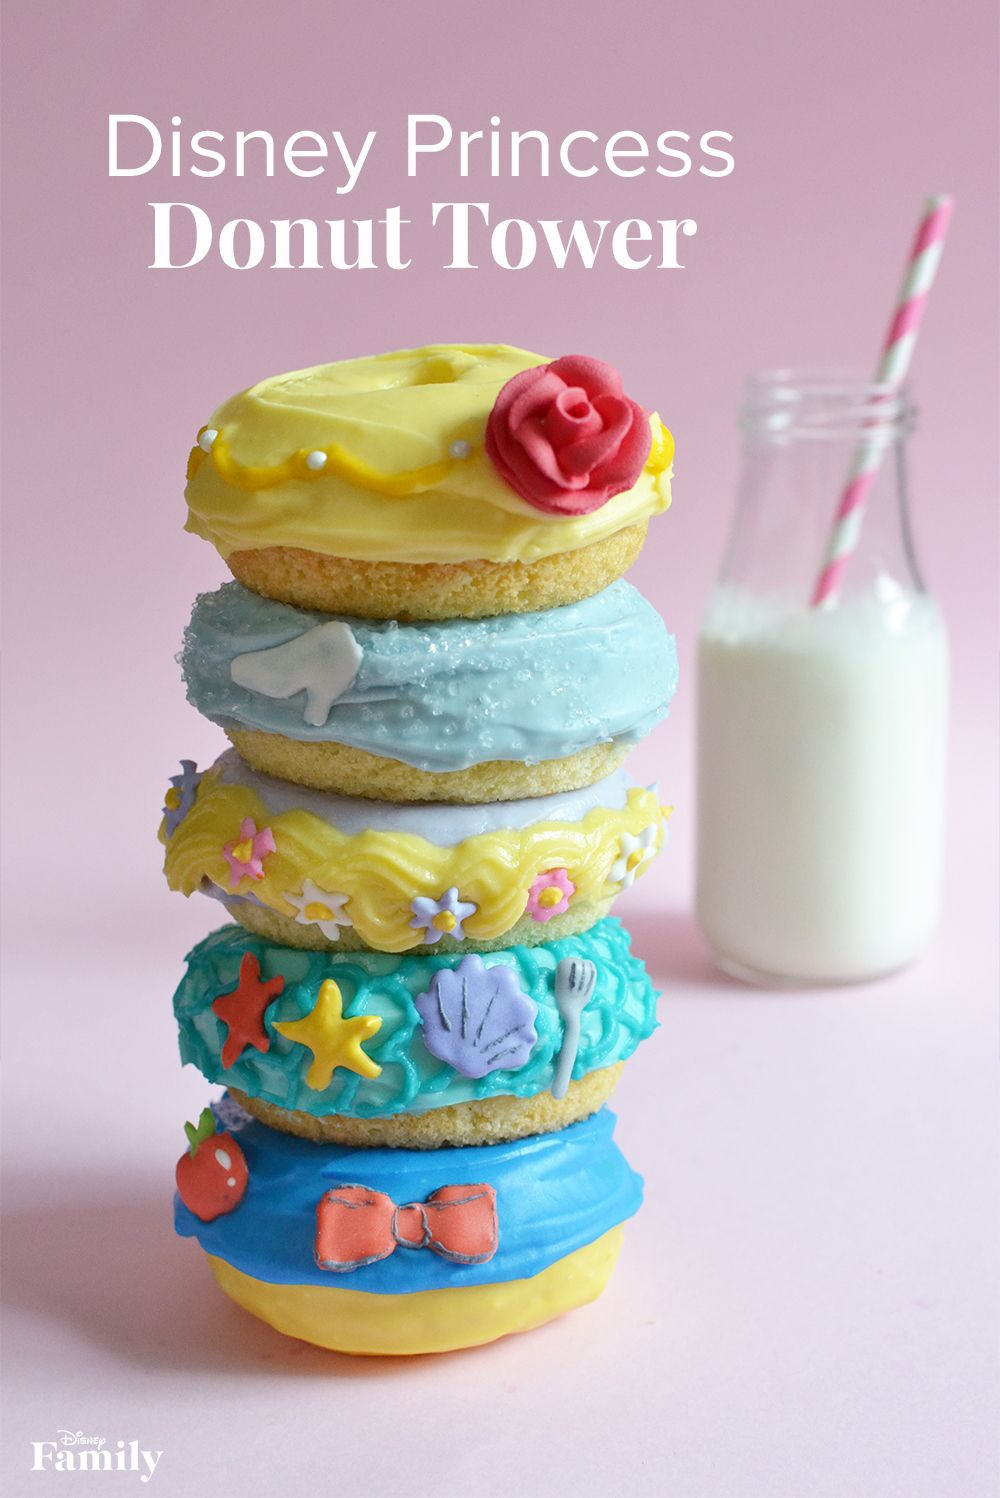 Inspired by the enchanting world of Disney Princesses, this five-tiered donut tower features Belle, Cinderella, Rapunzel, Ariel, and Snow White. These Disney Princess Donuts are perfect for a kids party or as an alternative to a birthday cake! Click for the Disney Princess recipe.